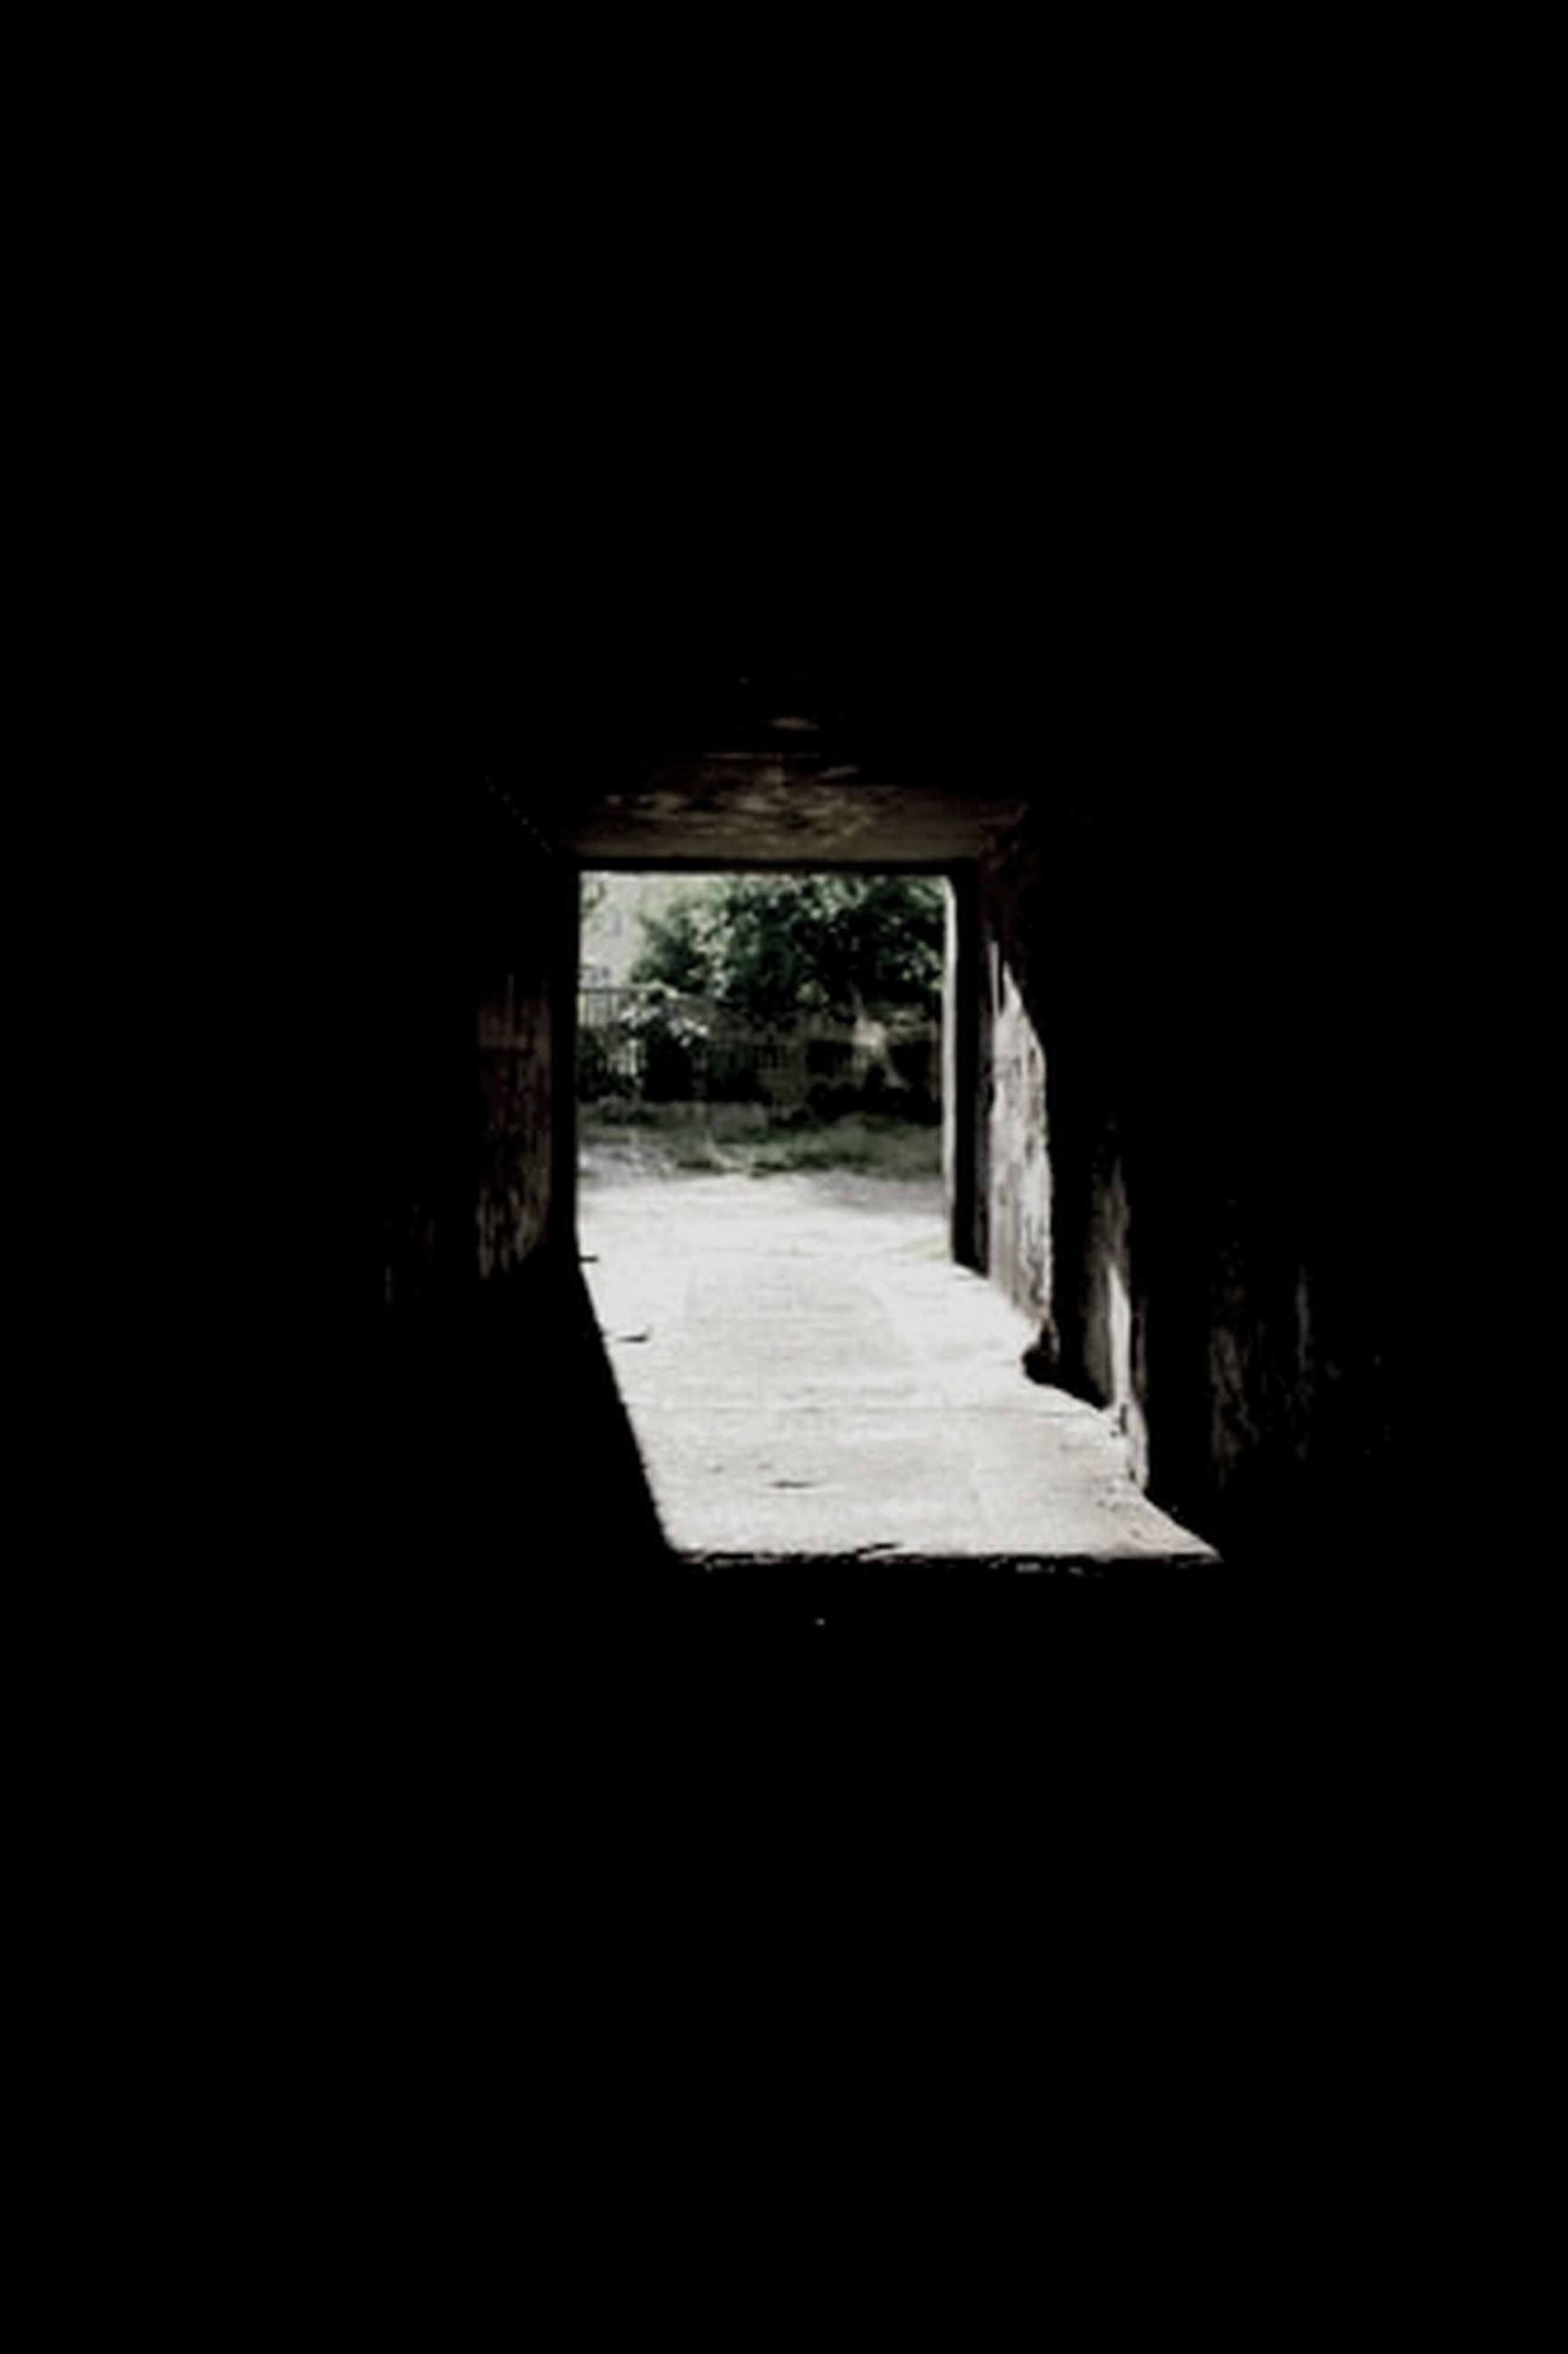 architecture, built structure, indoors, arch, the way forward, tunnel, dark, archway, wall - building feature, sunlight, copy space, corridor, building, wall, day, entrance, no people, old, diminishing perspective, shadow